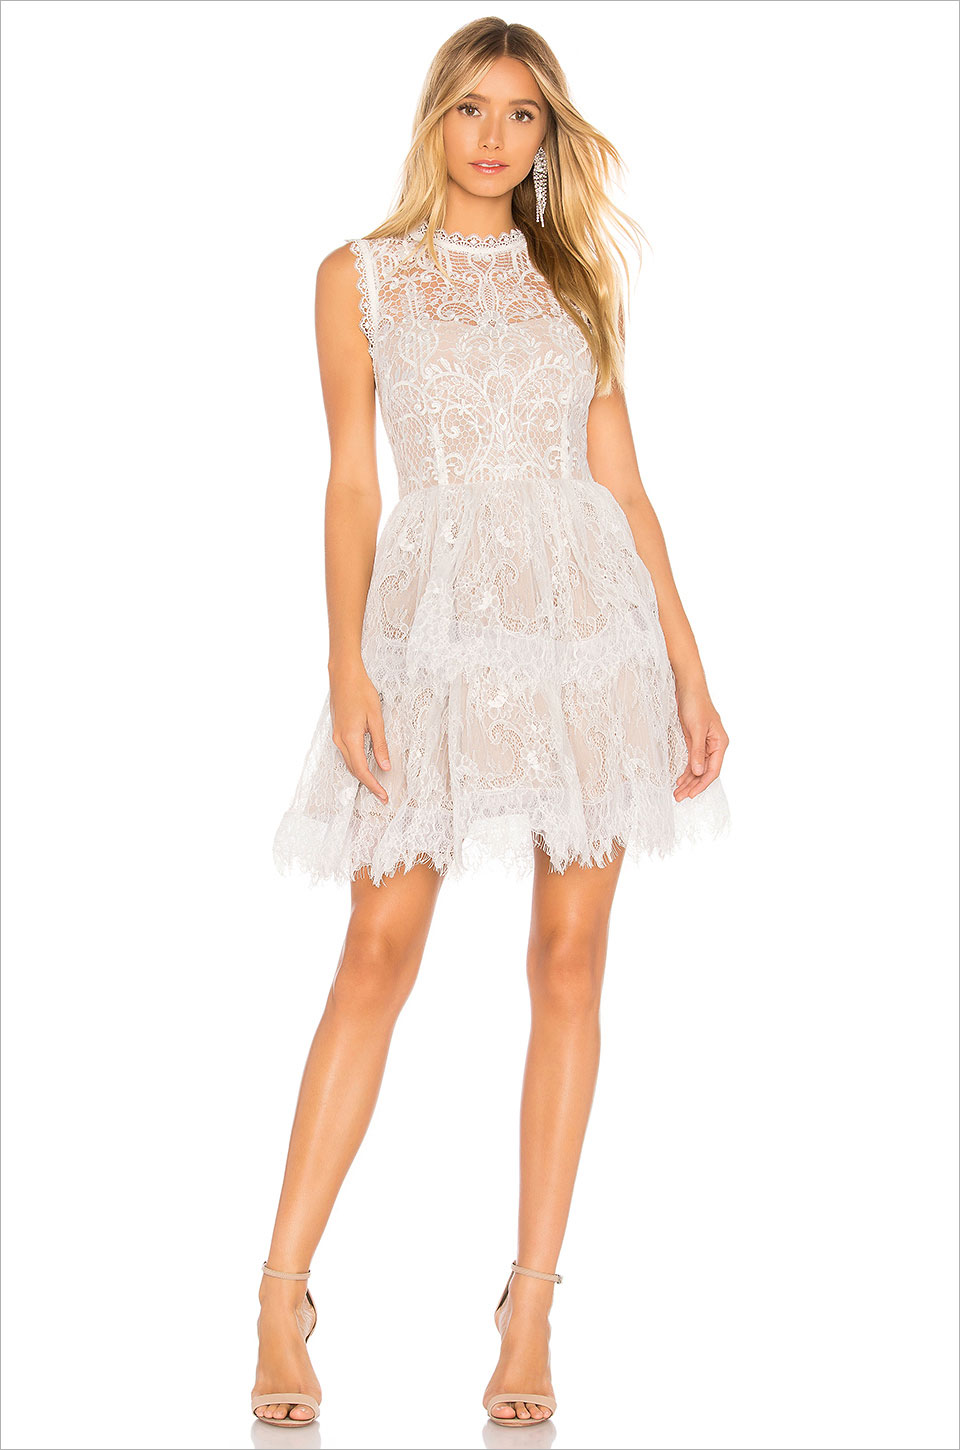 Florence white mini dress bronx banco lace high neck revolve bachelorette party bridal shower dress ideas